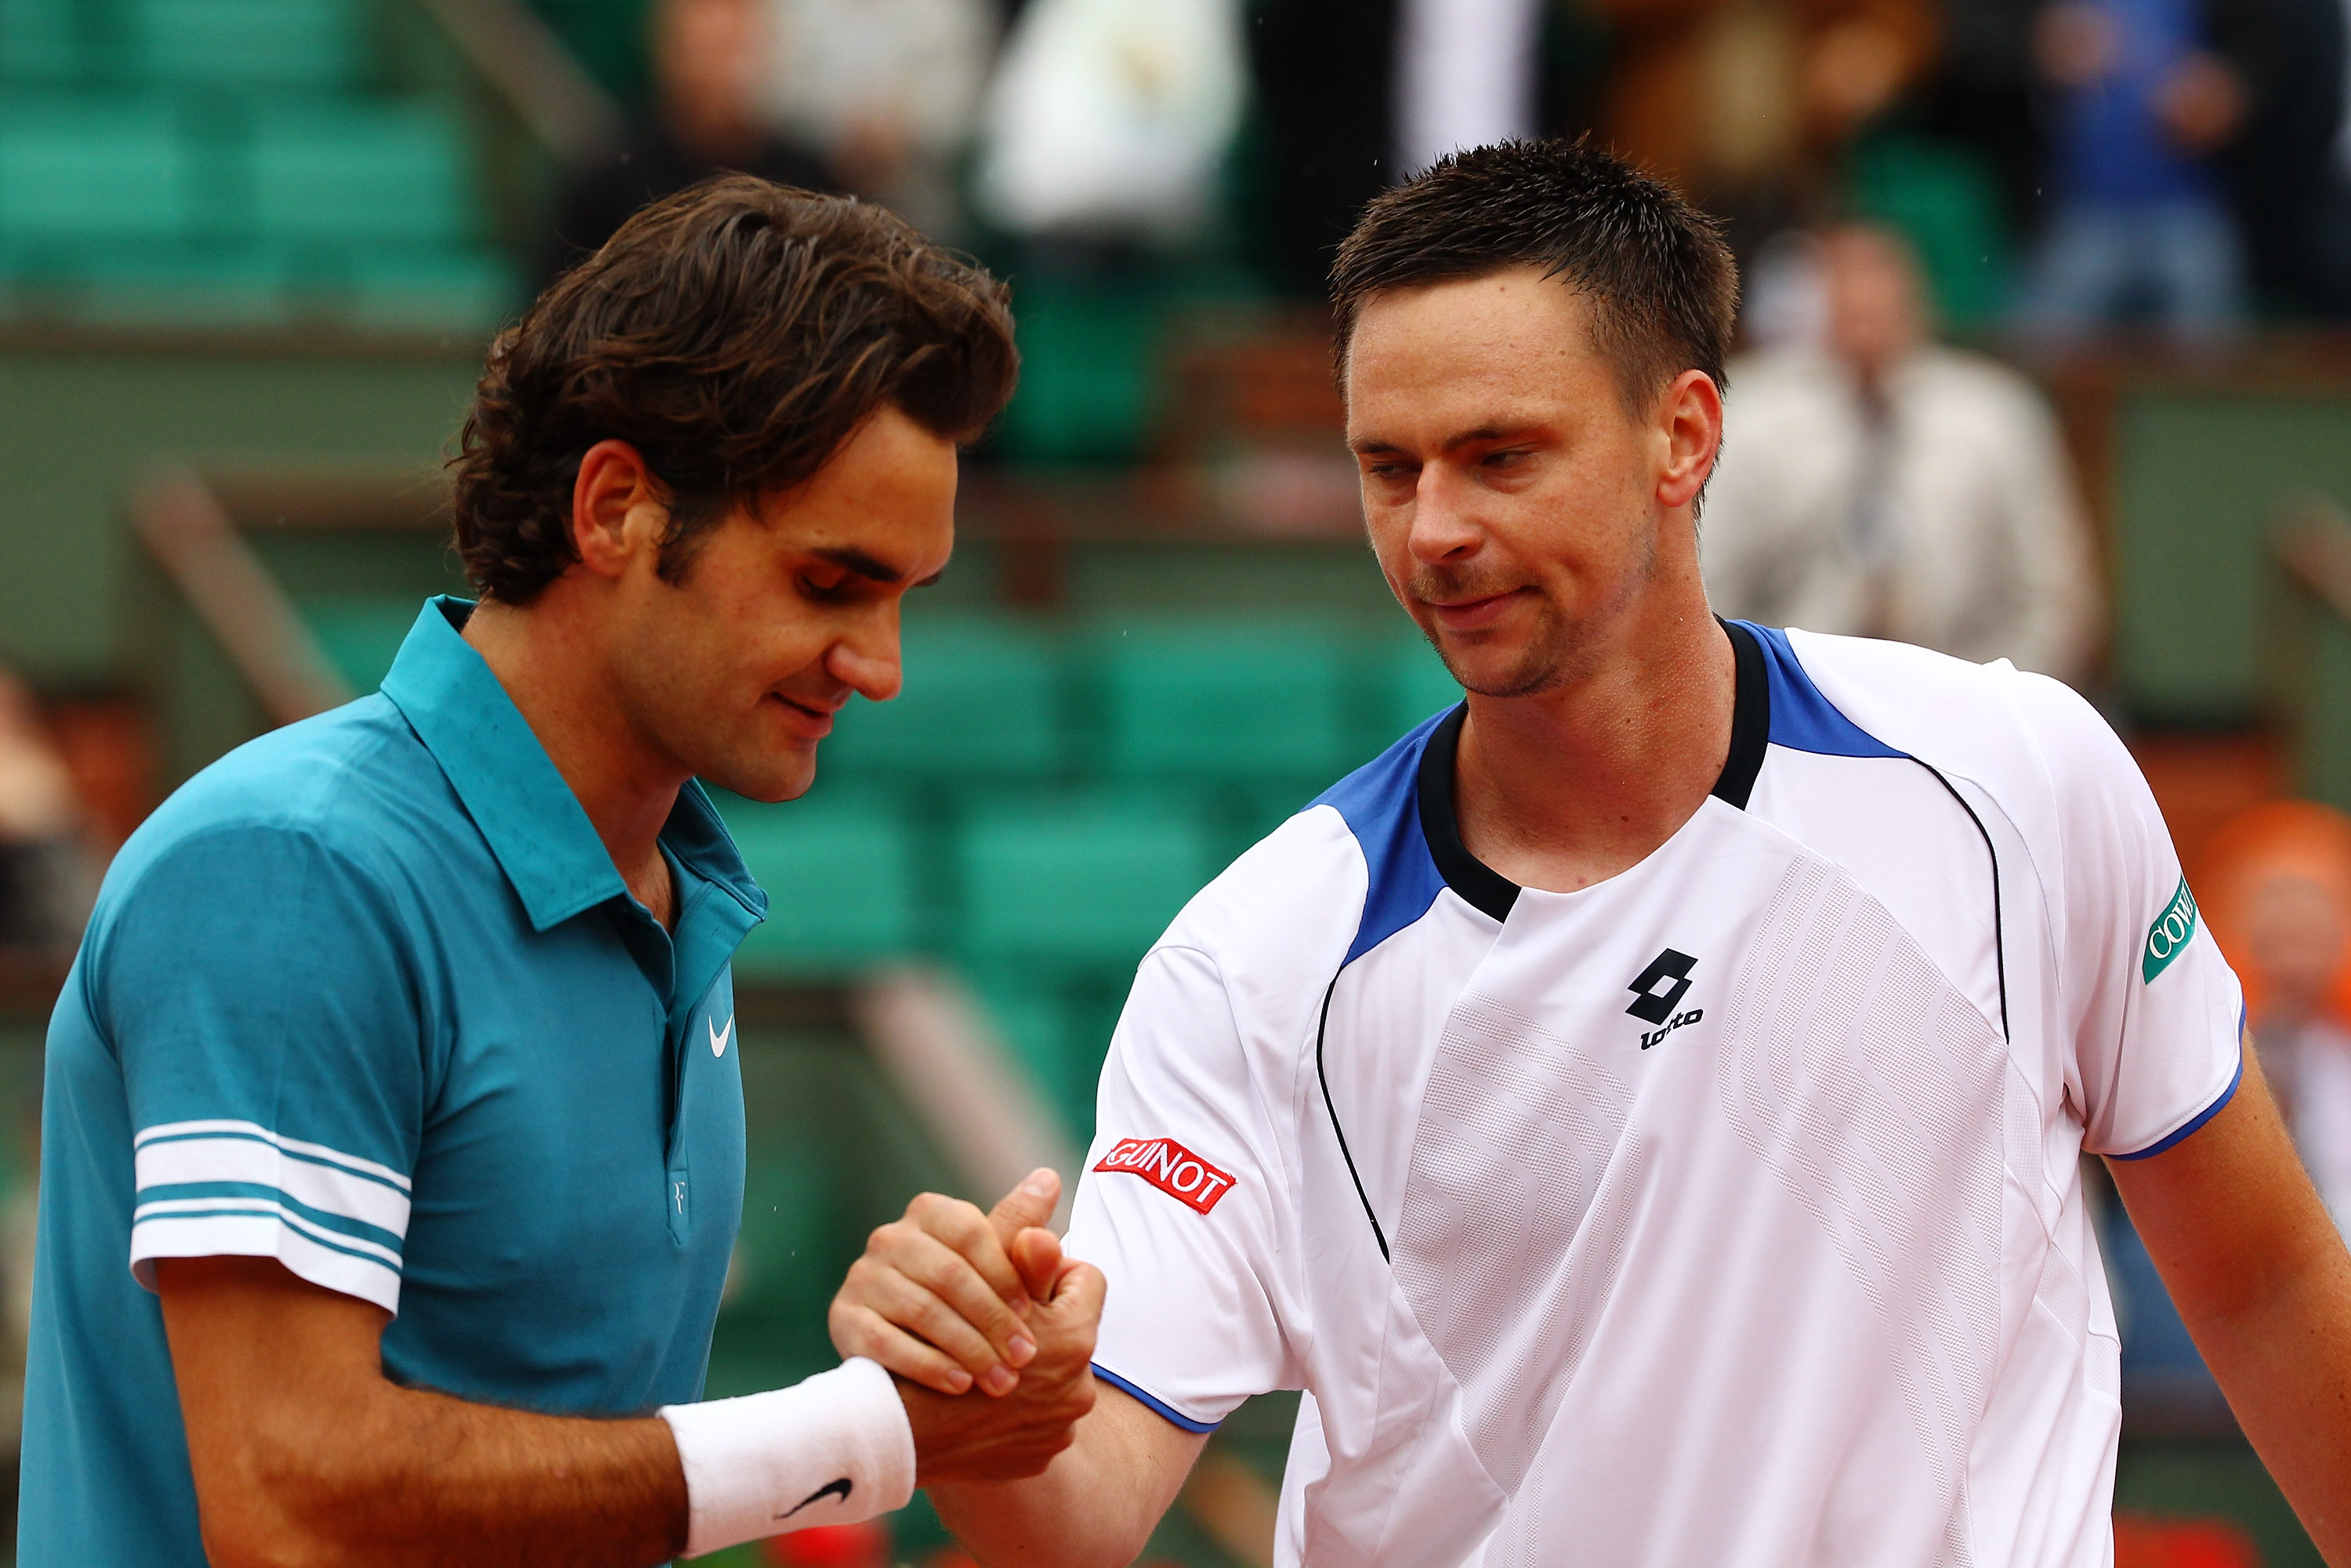 Federer lost to Soderling at the French in 2009 to end his semifinal streak.